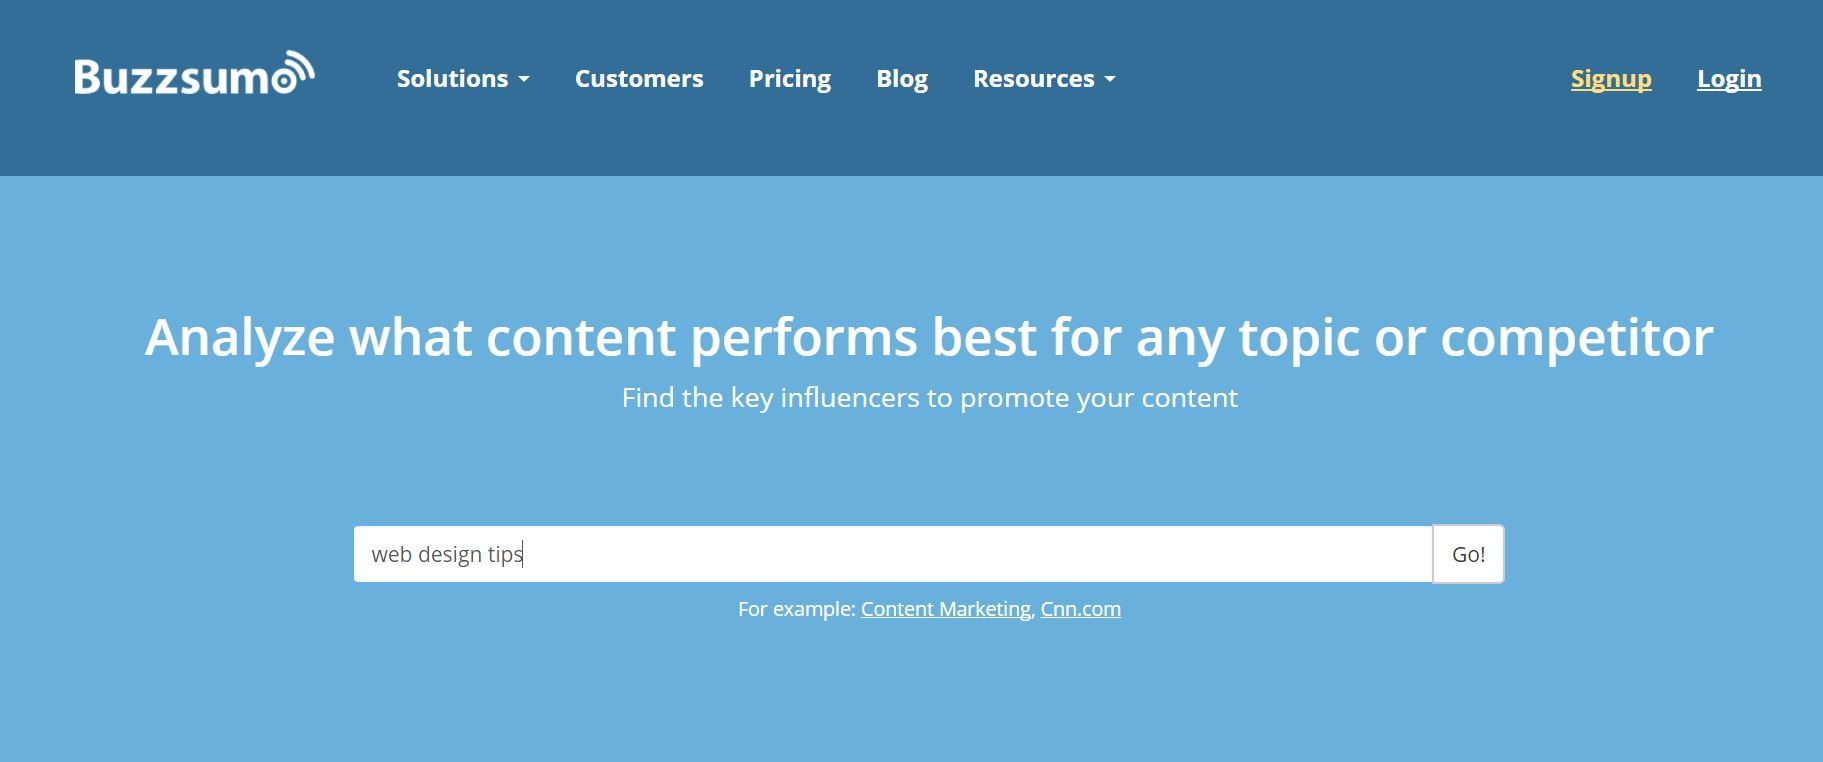 screen shot of buzz sumo searching for web design tips